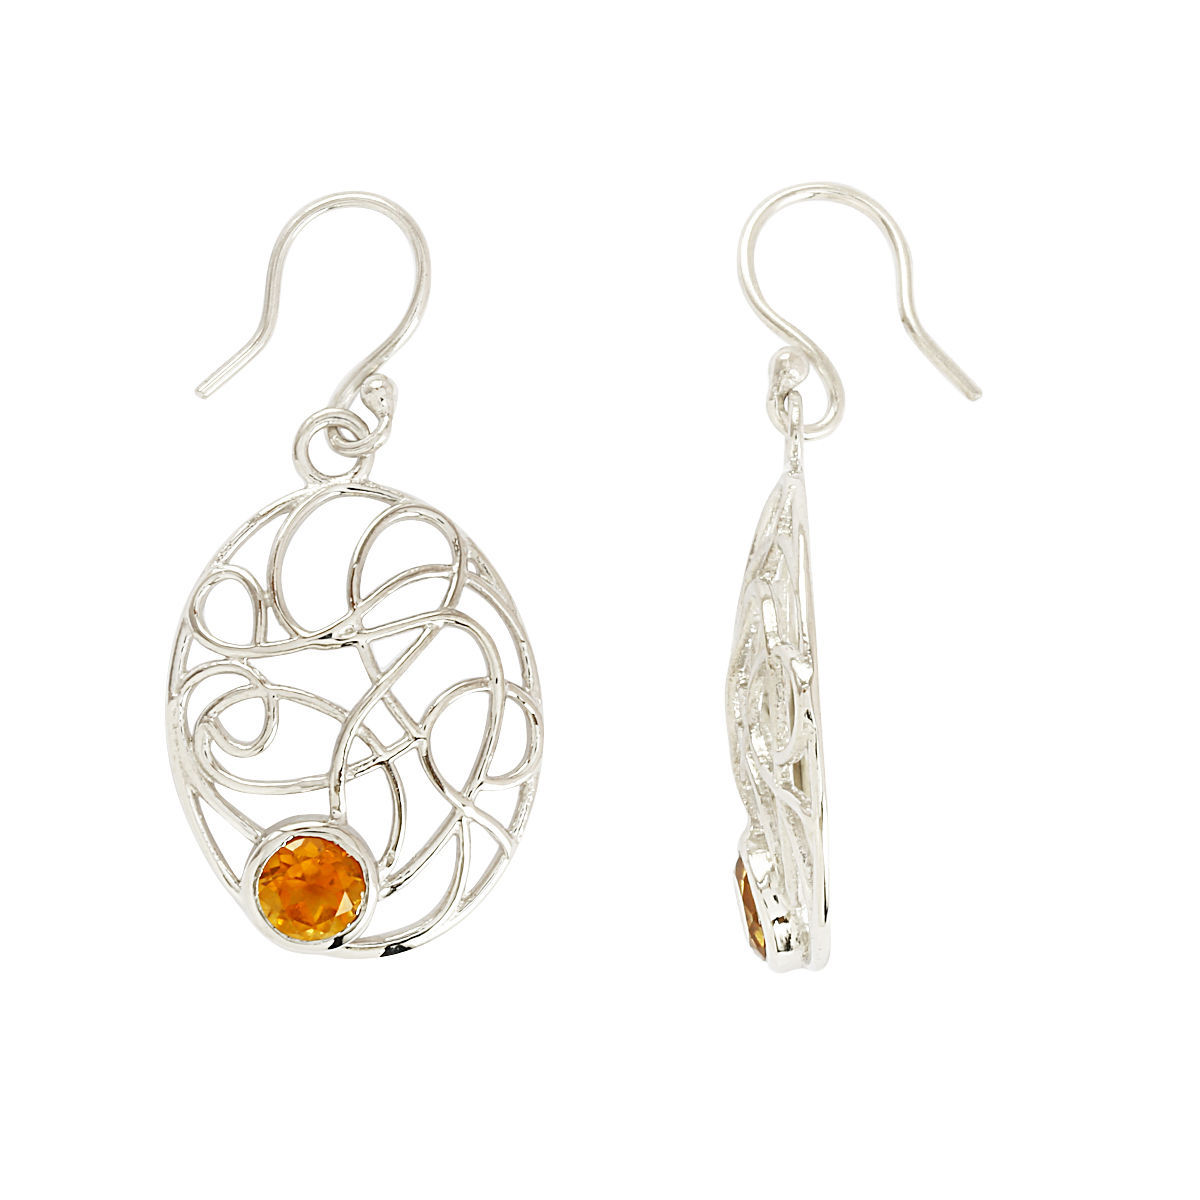 5 MM Citrine Gemstone Handmade Solid 925 Sterling Silver Jewelry Earring SHER178